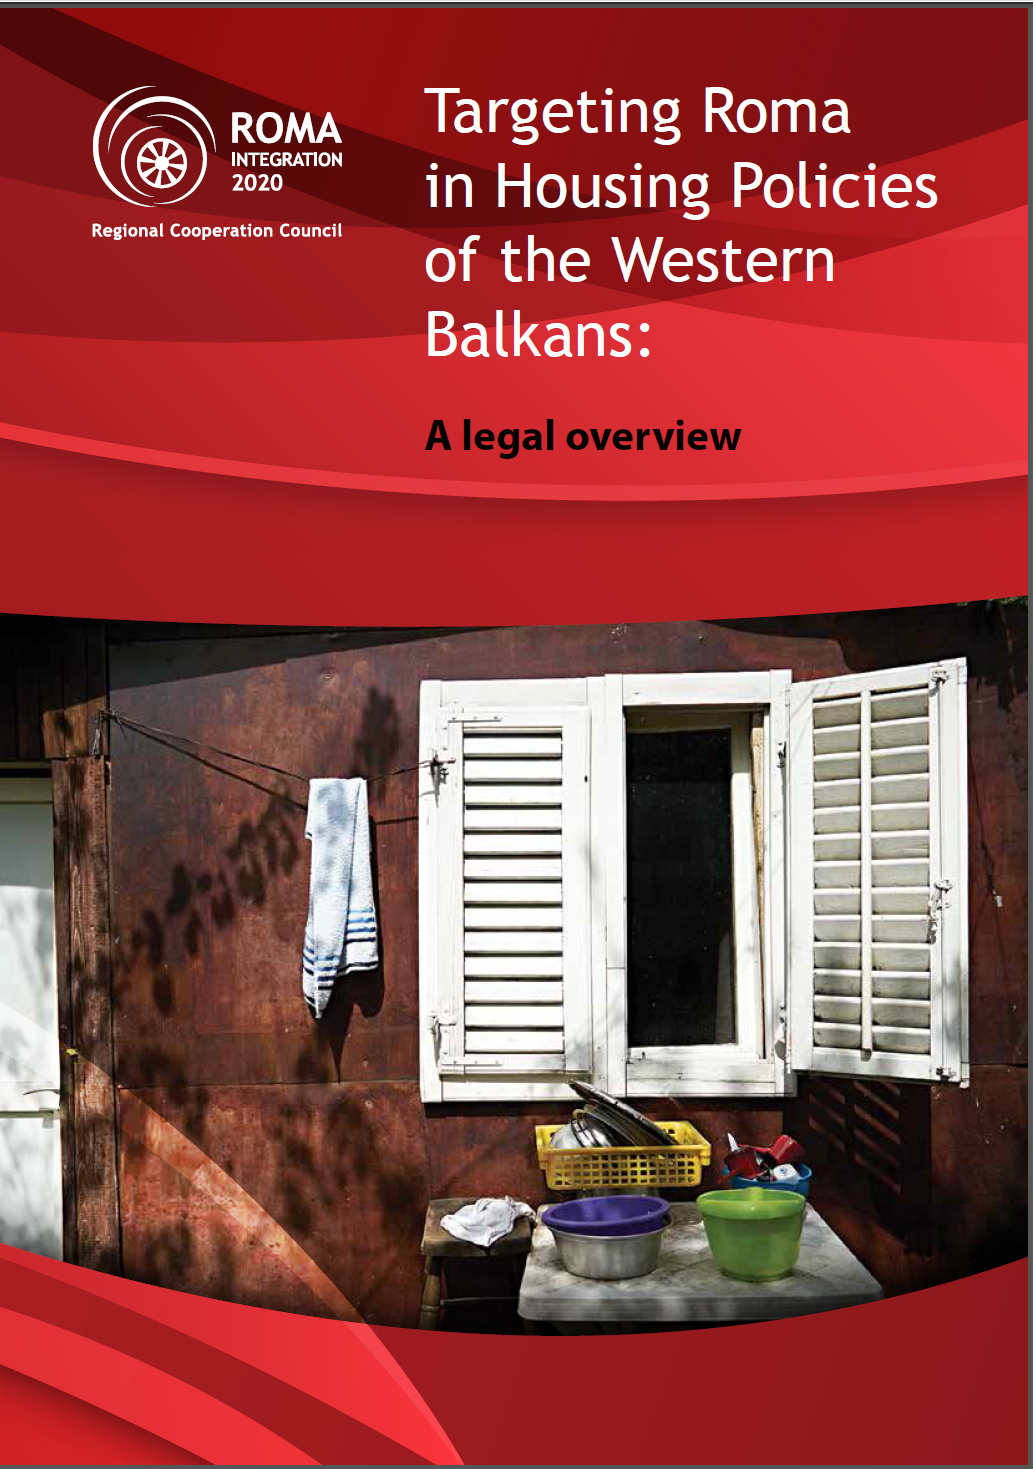 Targeting Roma in Housing Policies of the Western Balkans - A legal overview